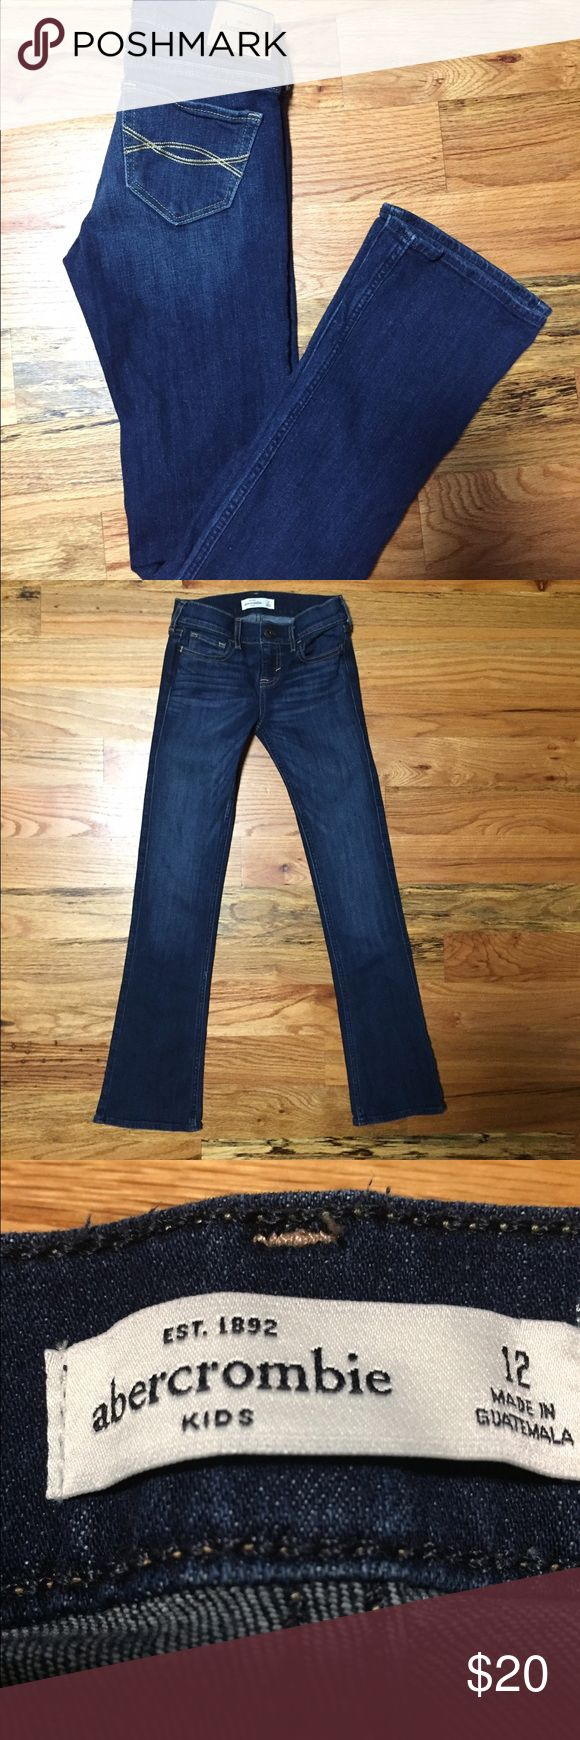 Abercrombie girls' jeans. Size 12. Excellent! Abercrombie girls' jeans. Size 12. Excellent! Great jeans!!  No signs of wash or wear. Smoke and pet free home. abercrombie kids Bottoms Jeans